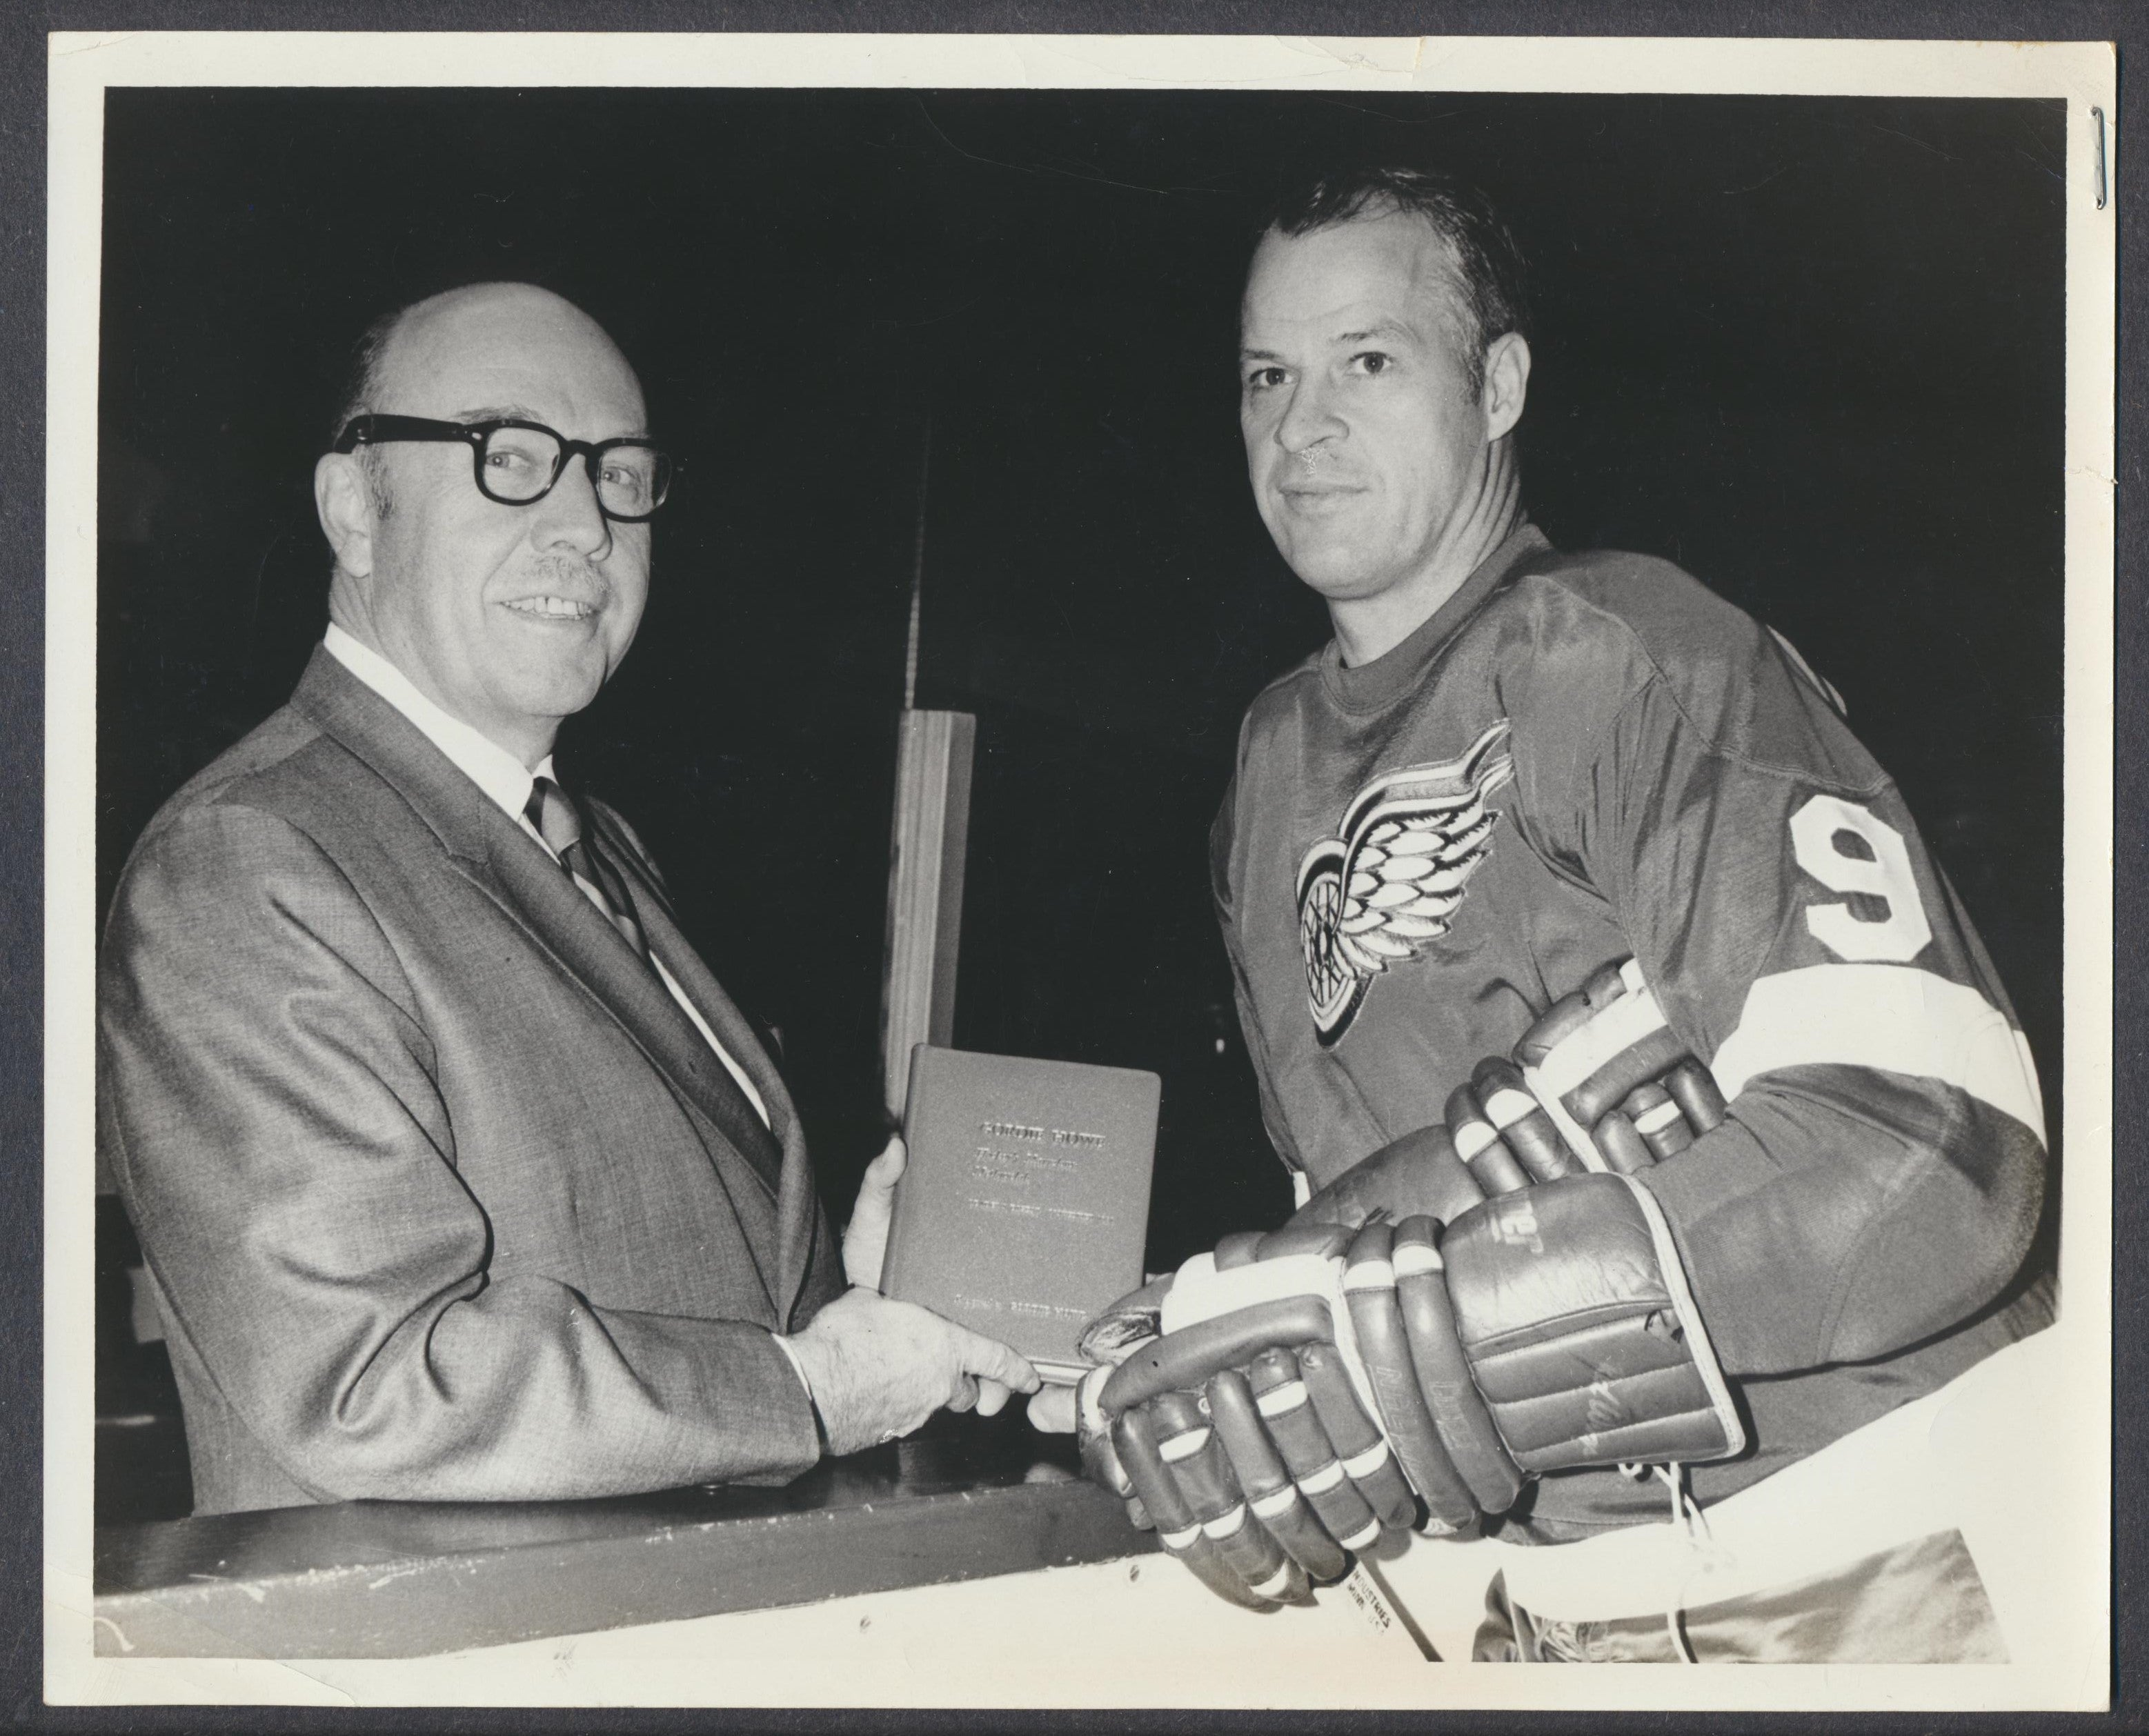 Original 1960's Gordie Howe with Gordie Howe Book  Detroit Red Wings  News Archives